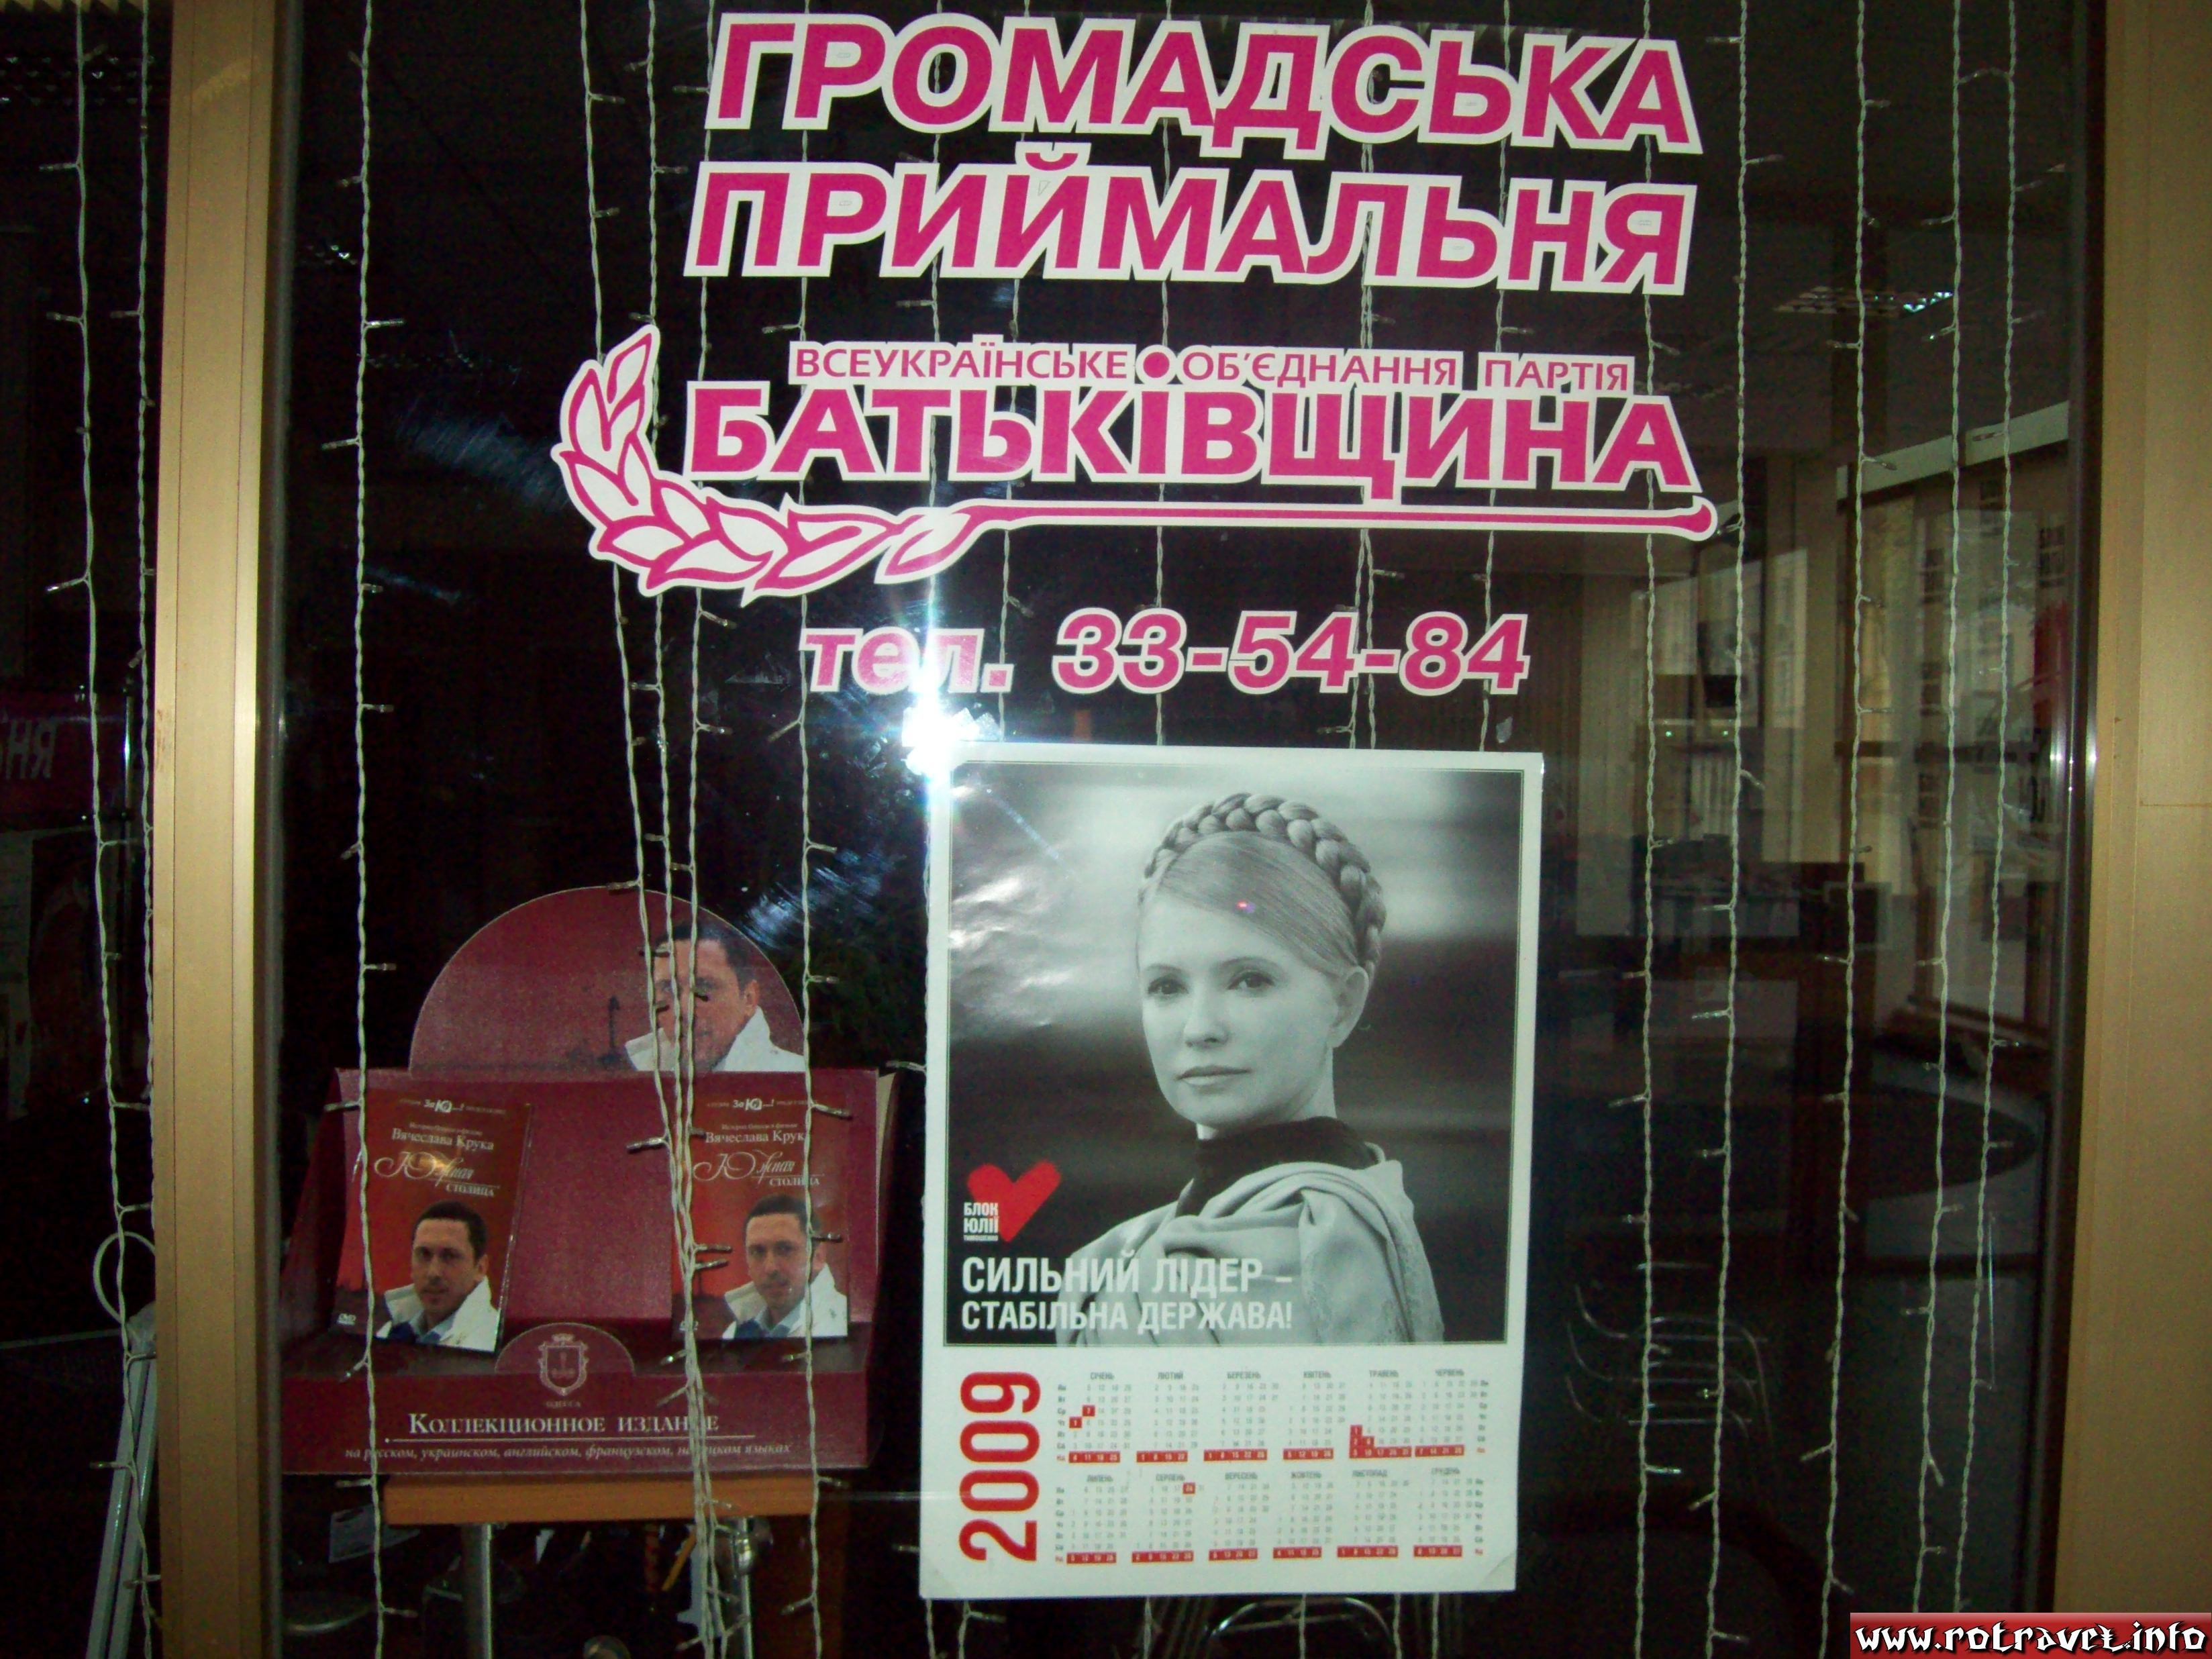 Hair for all Ukraine from Yulia Volodymyrivna Tymoshenko (Ukrainian: Юлія Володимирівна Тимошенко), the Prime Minister of Ukraine